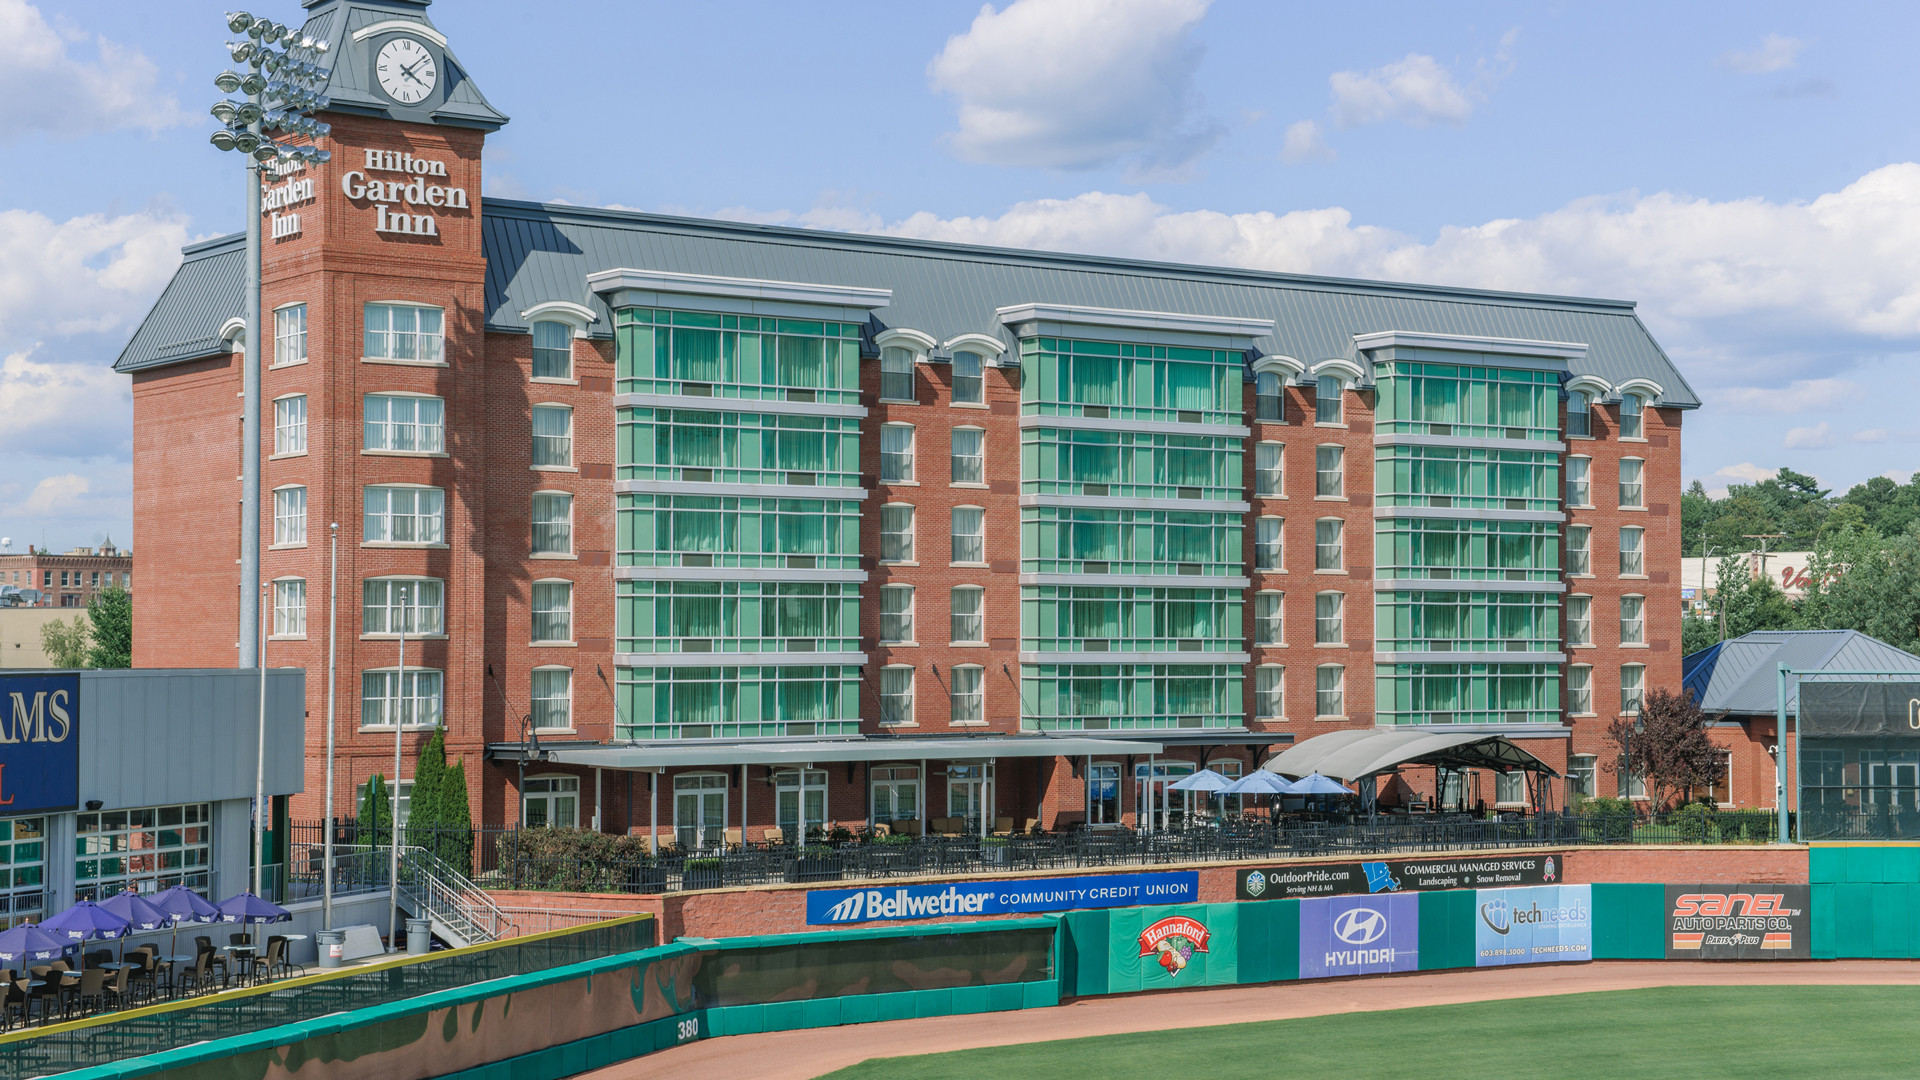 New Hampshire restaurants and activities | The Hilton Garden Inn Manchester is connected to the Northeast Delta Dental Stadium